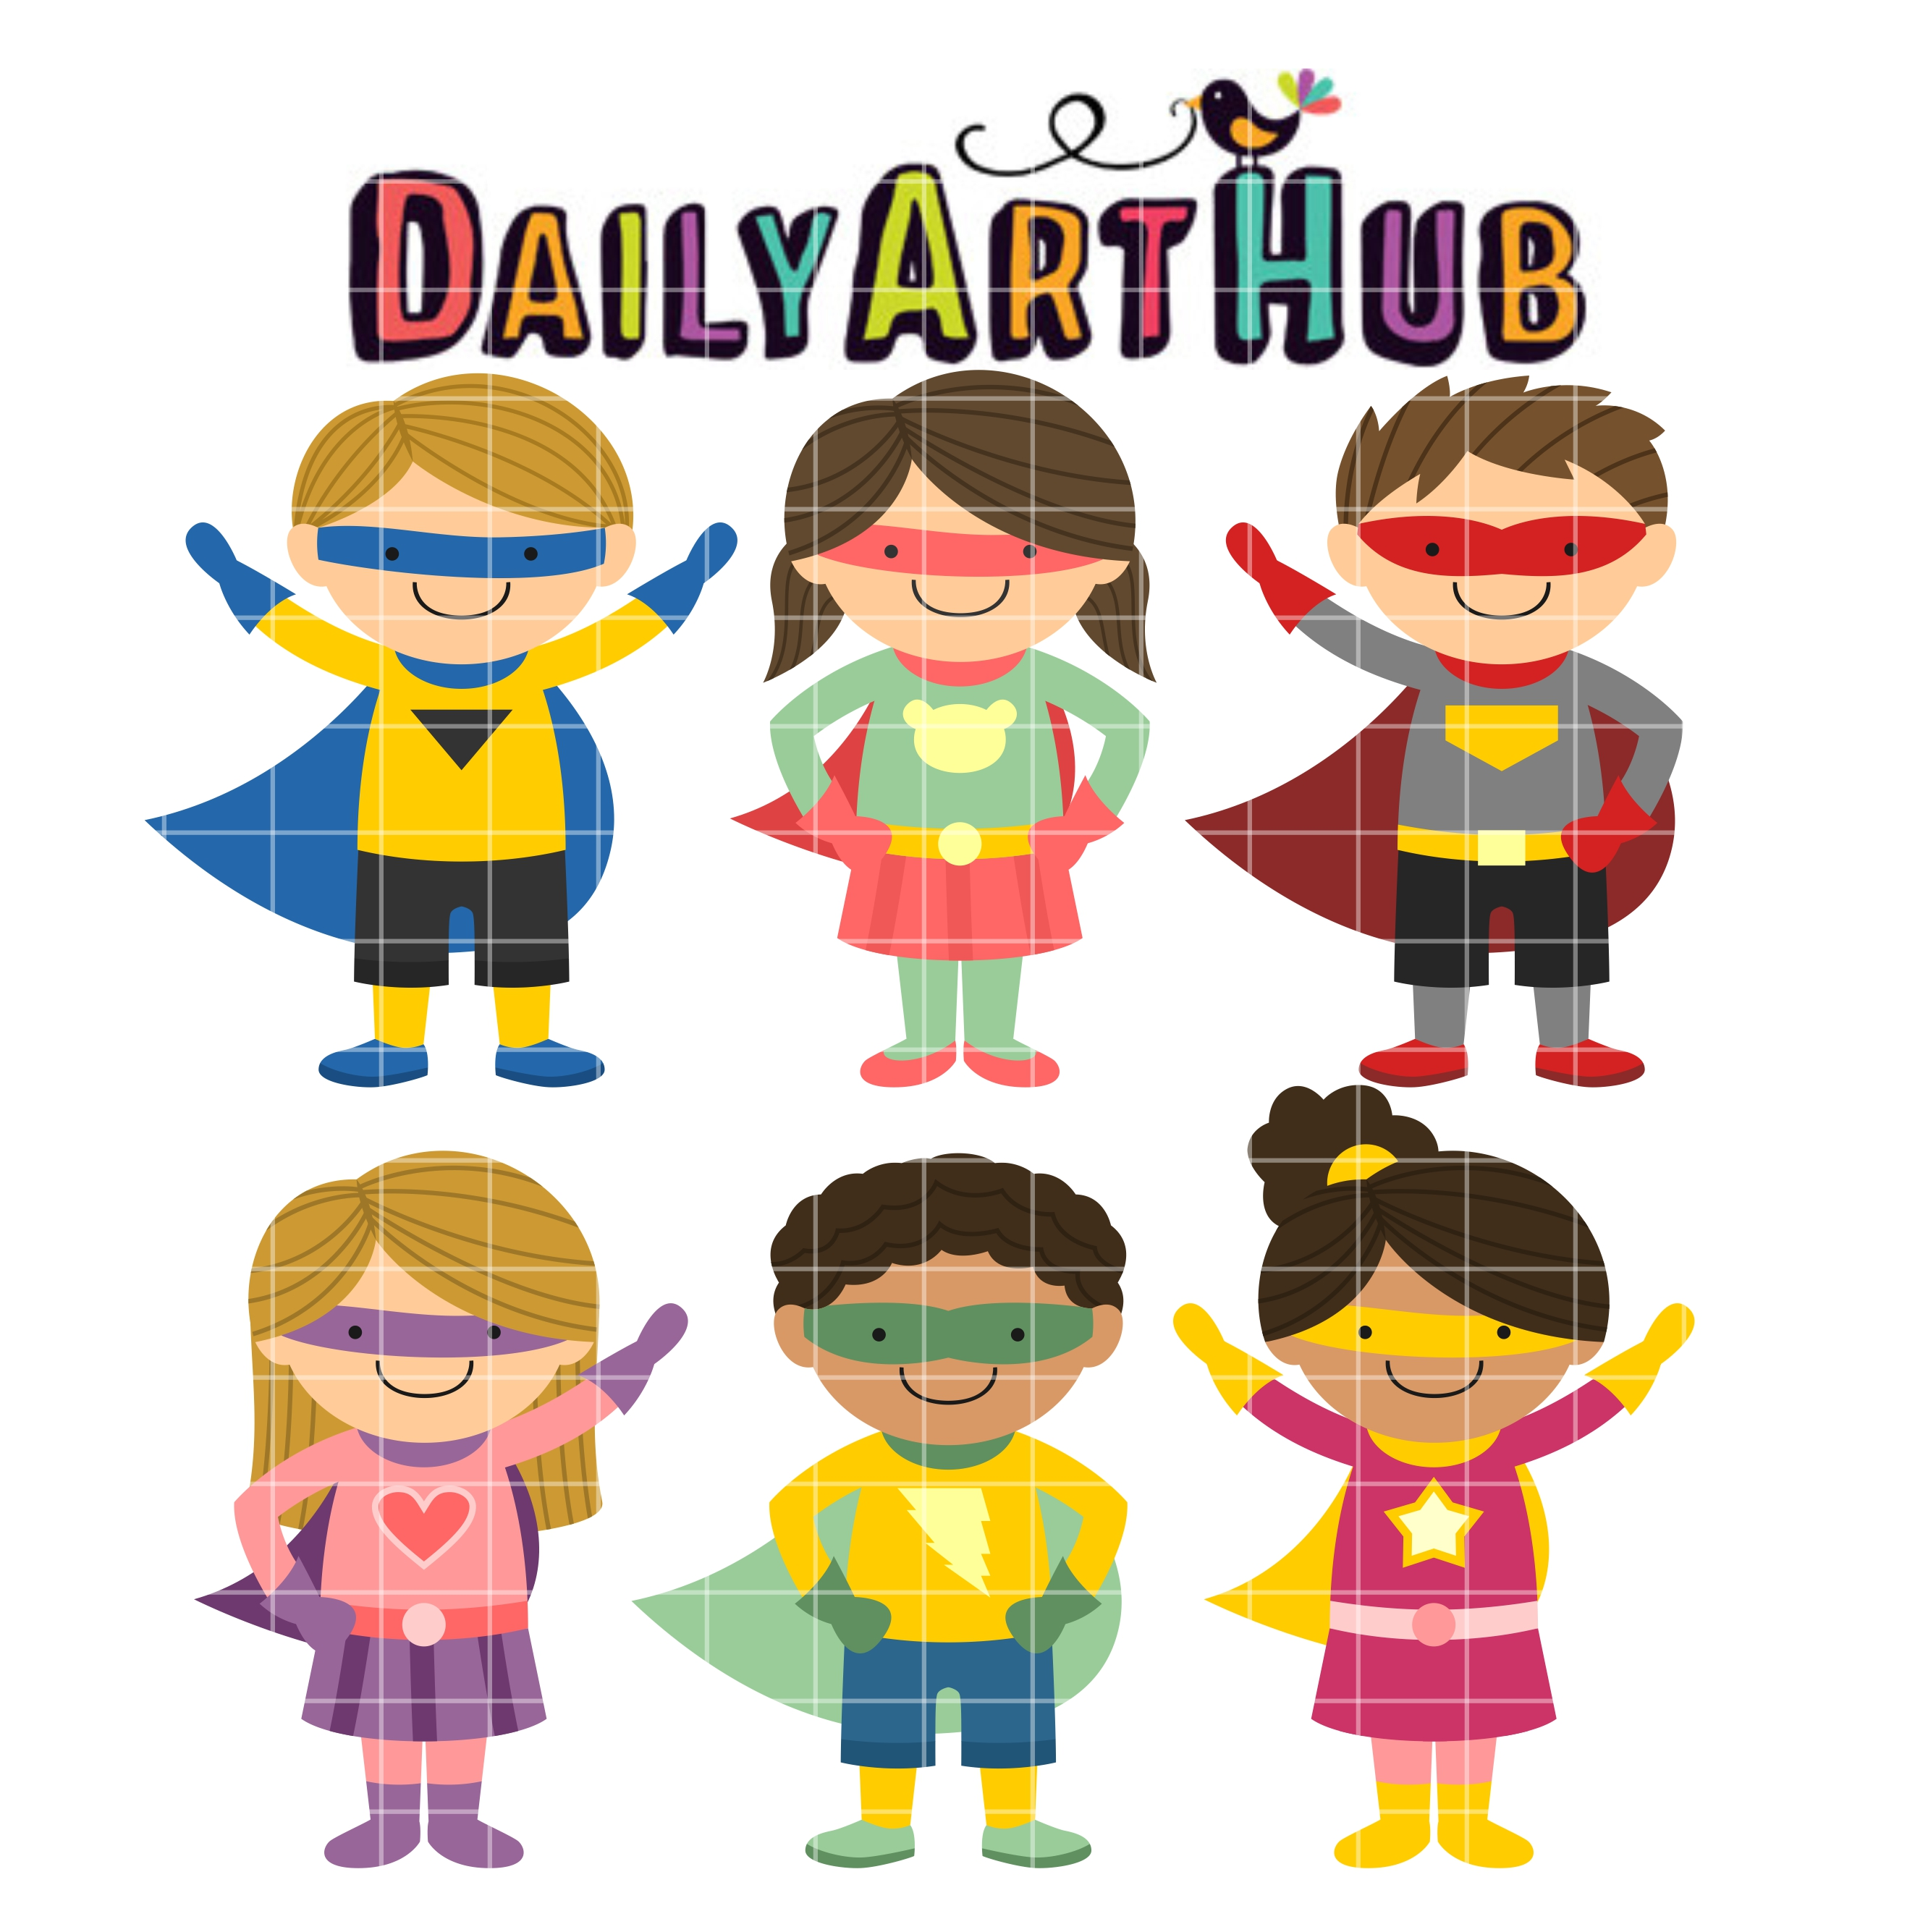 superhero kids clip art set $ 2 99 superhero kids clip art set add to